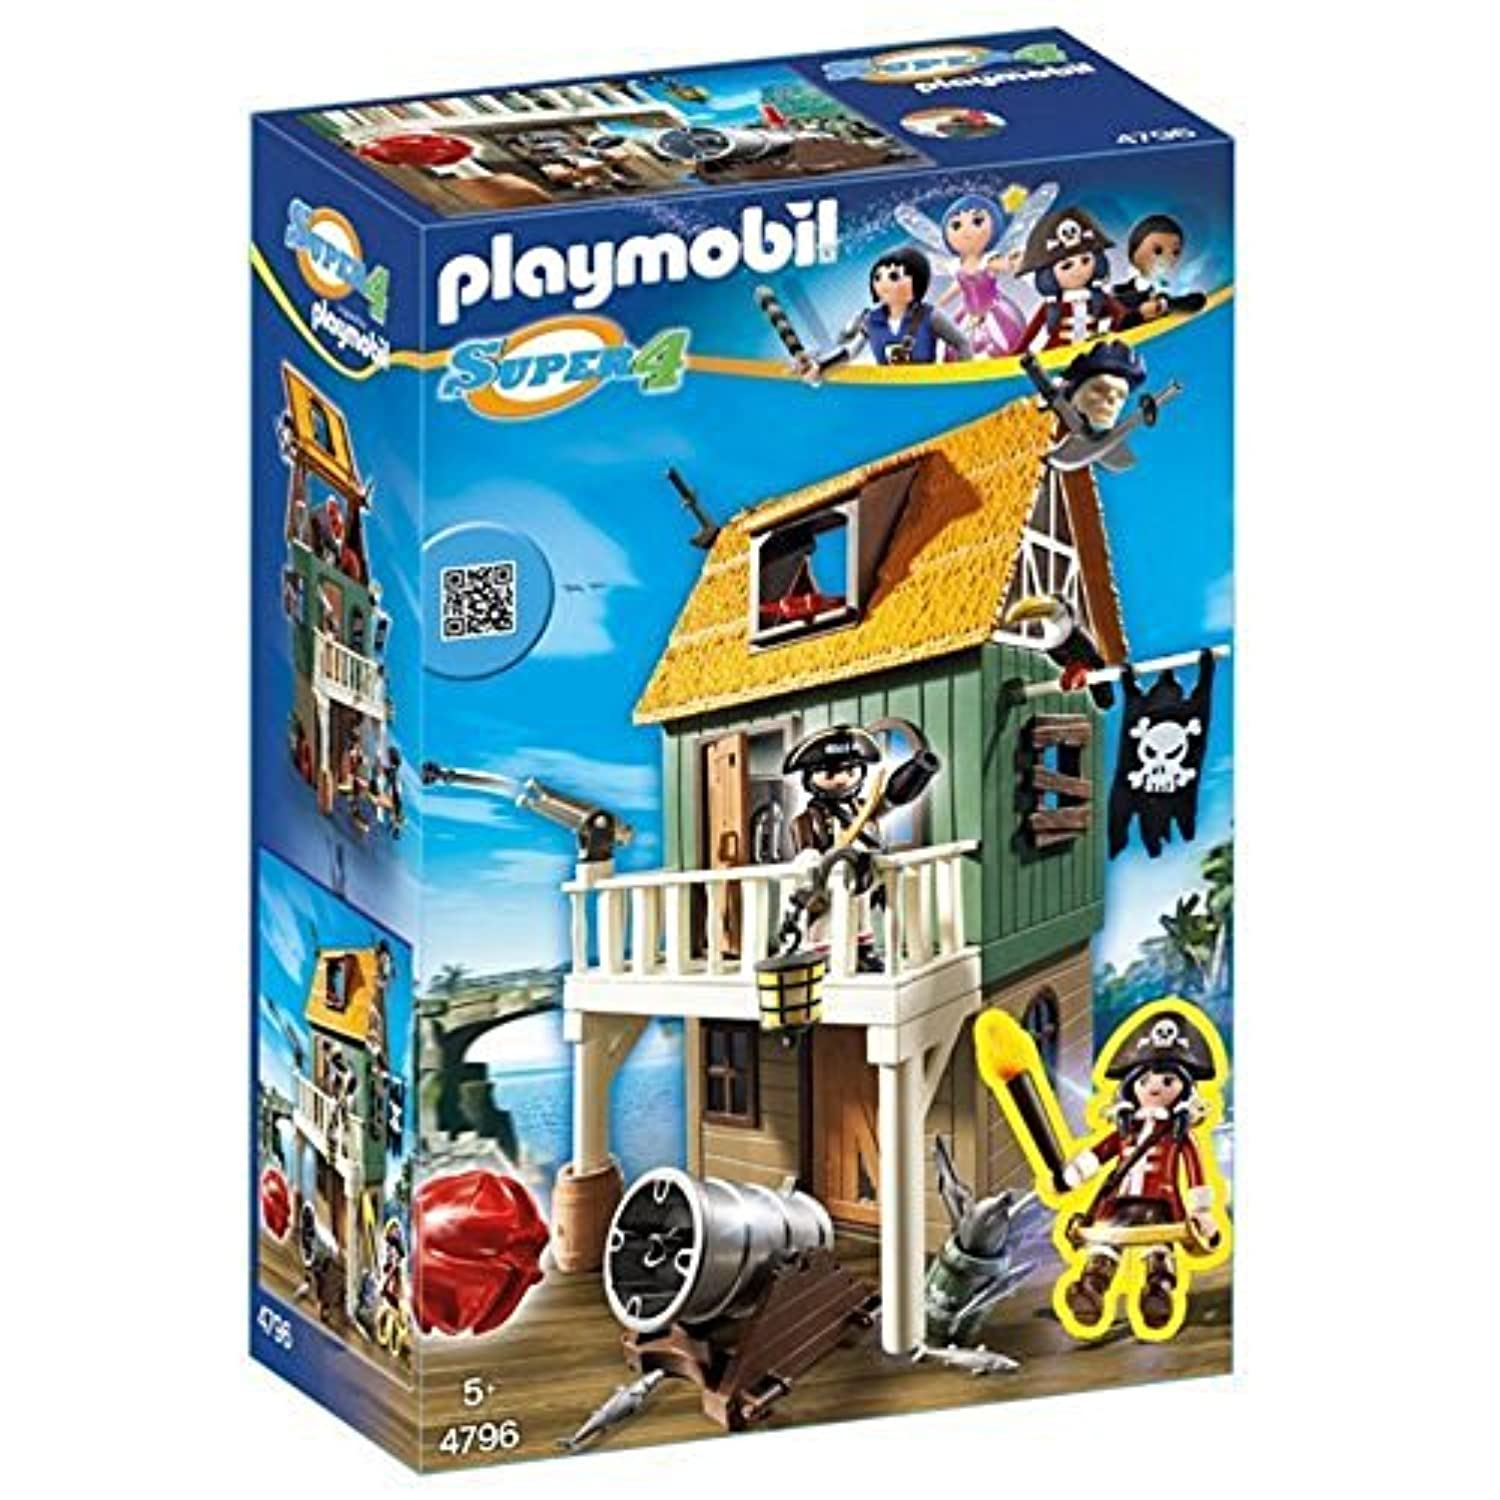 Playmobil 4796 Super 4 Gunpowder Island House [並行輸入品]